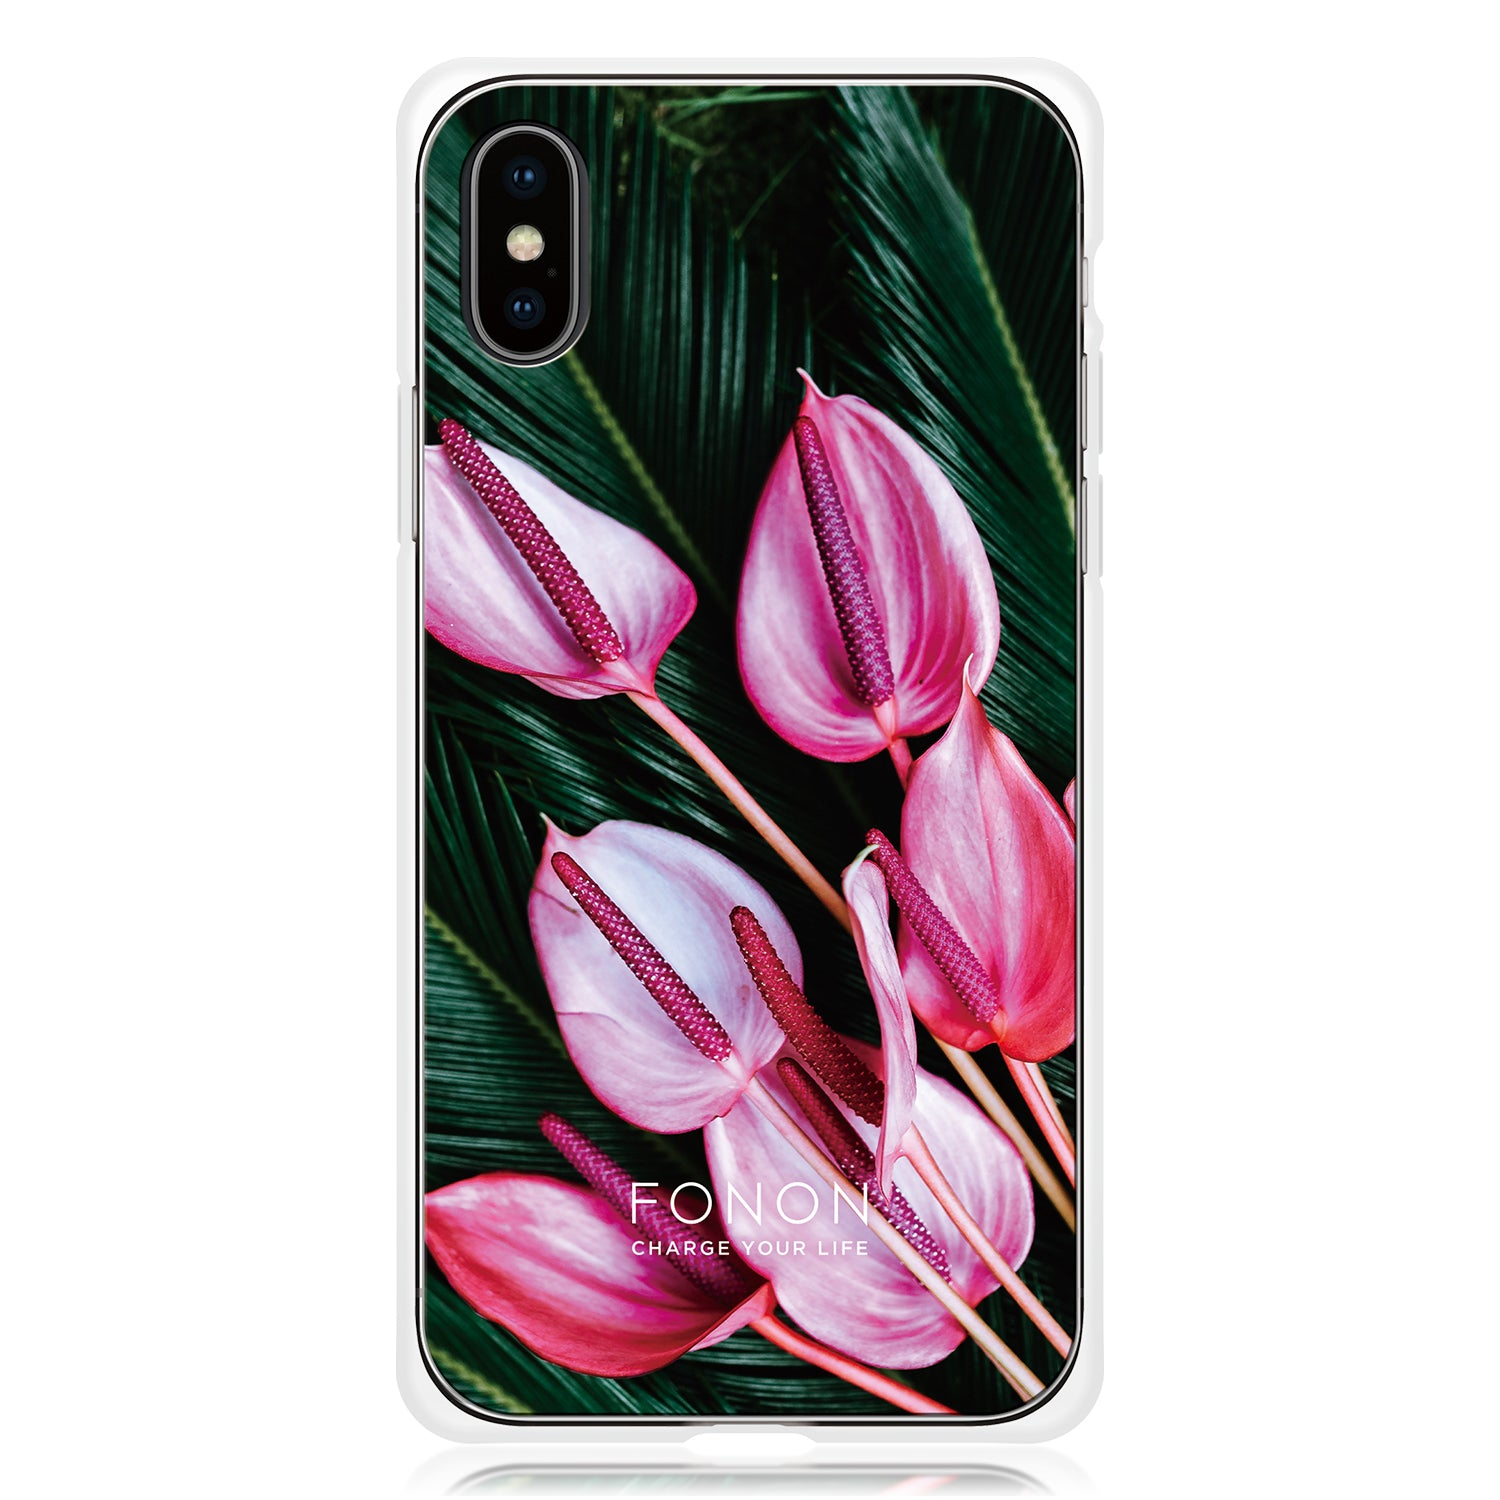 DAMPER GLASS iPhone CASE - BOTANICAL GARDEN-Anthurium